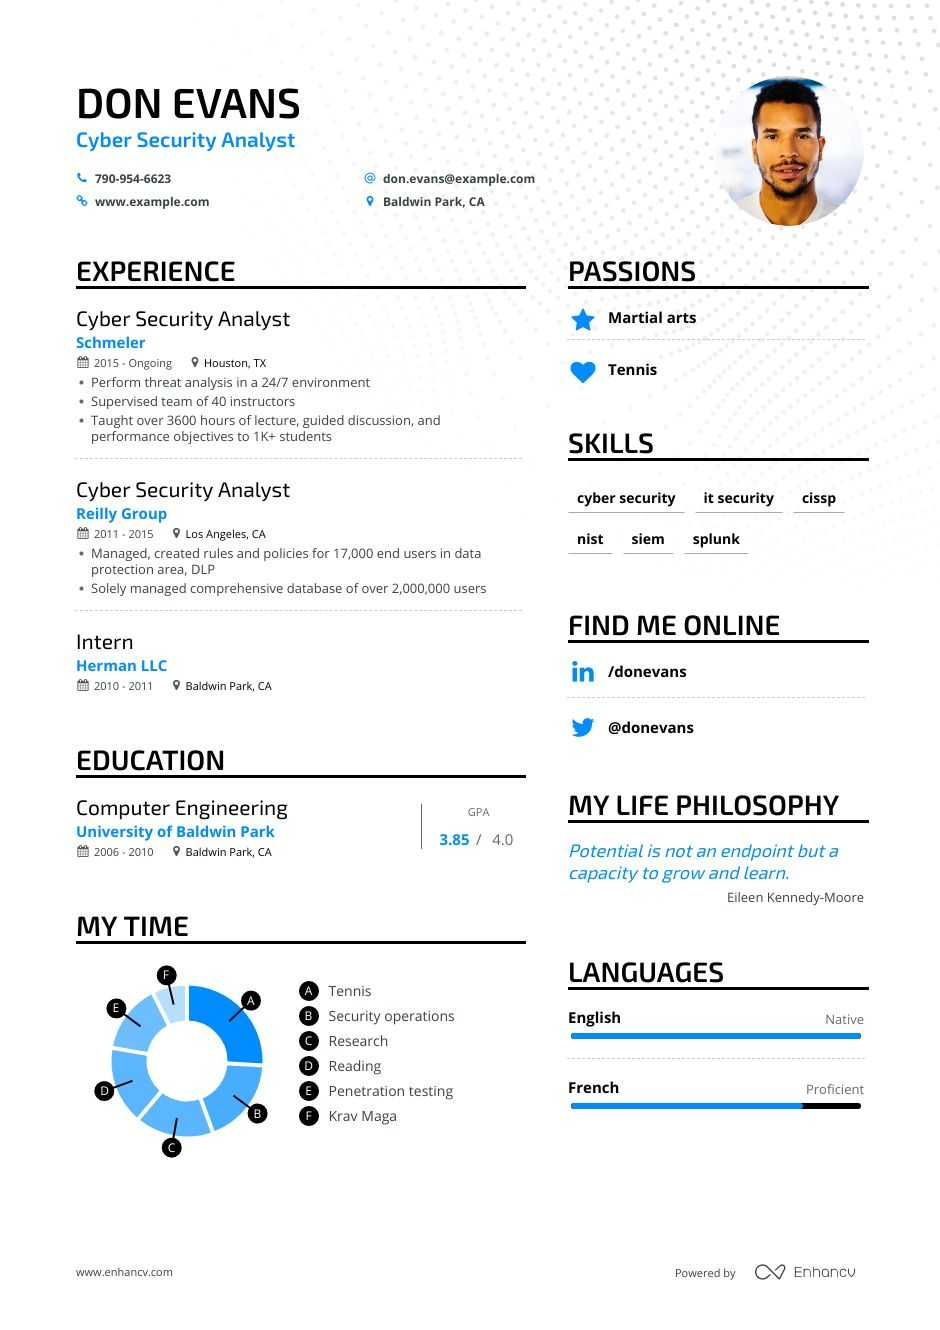 cyber security analyst resume examples guide pro tips enhancv sample guidewire claim Resume Cyber Security Resume Sample